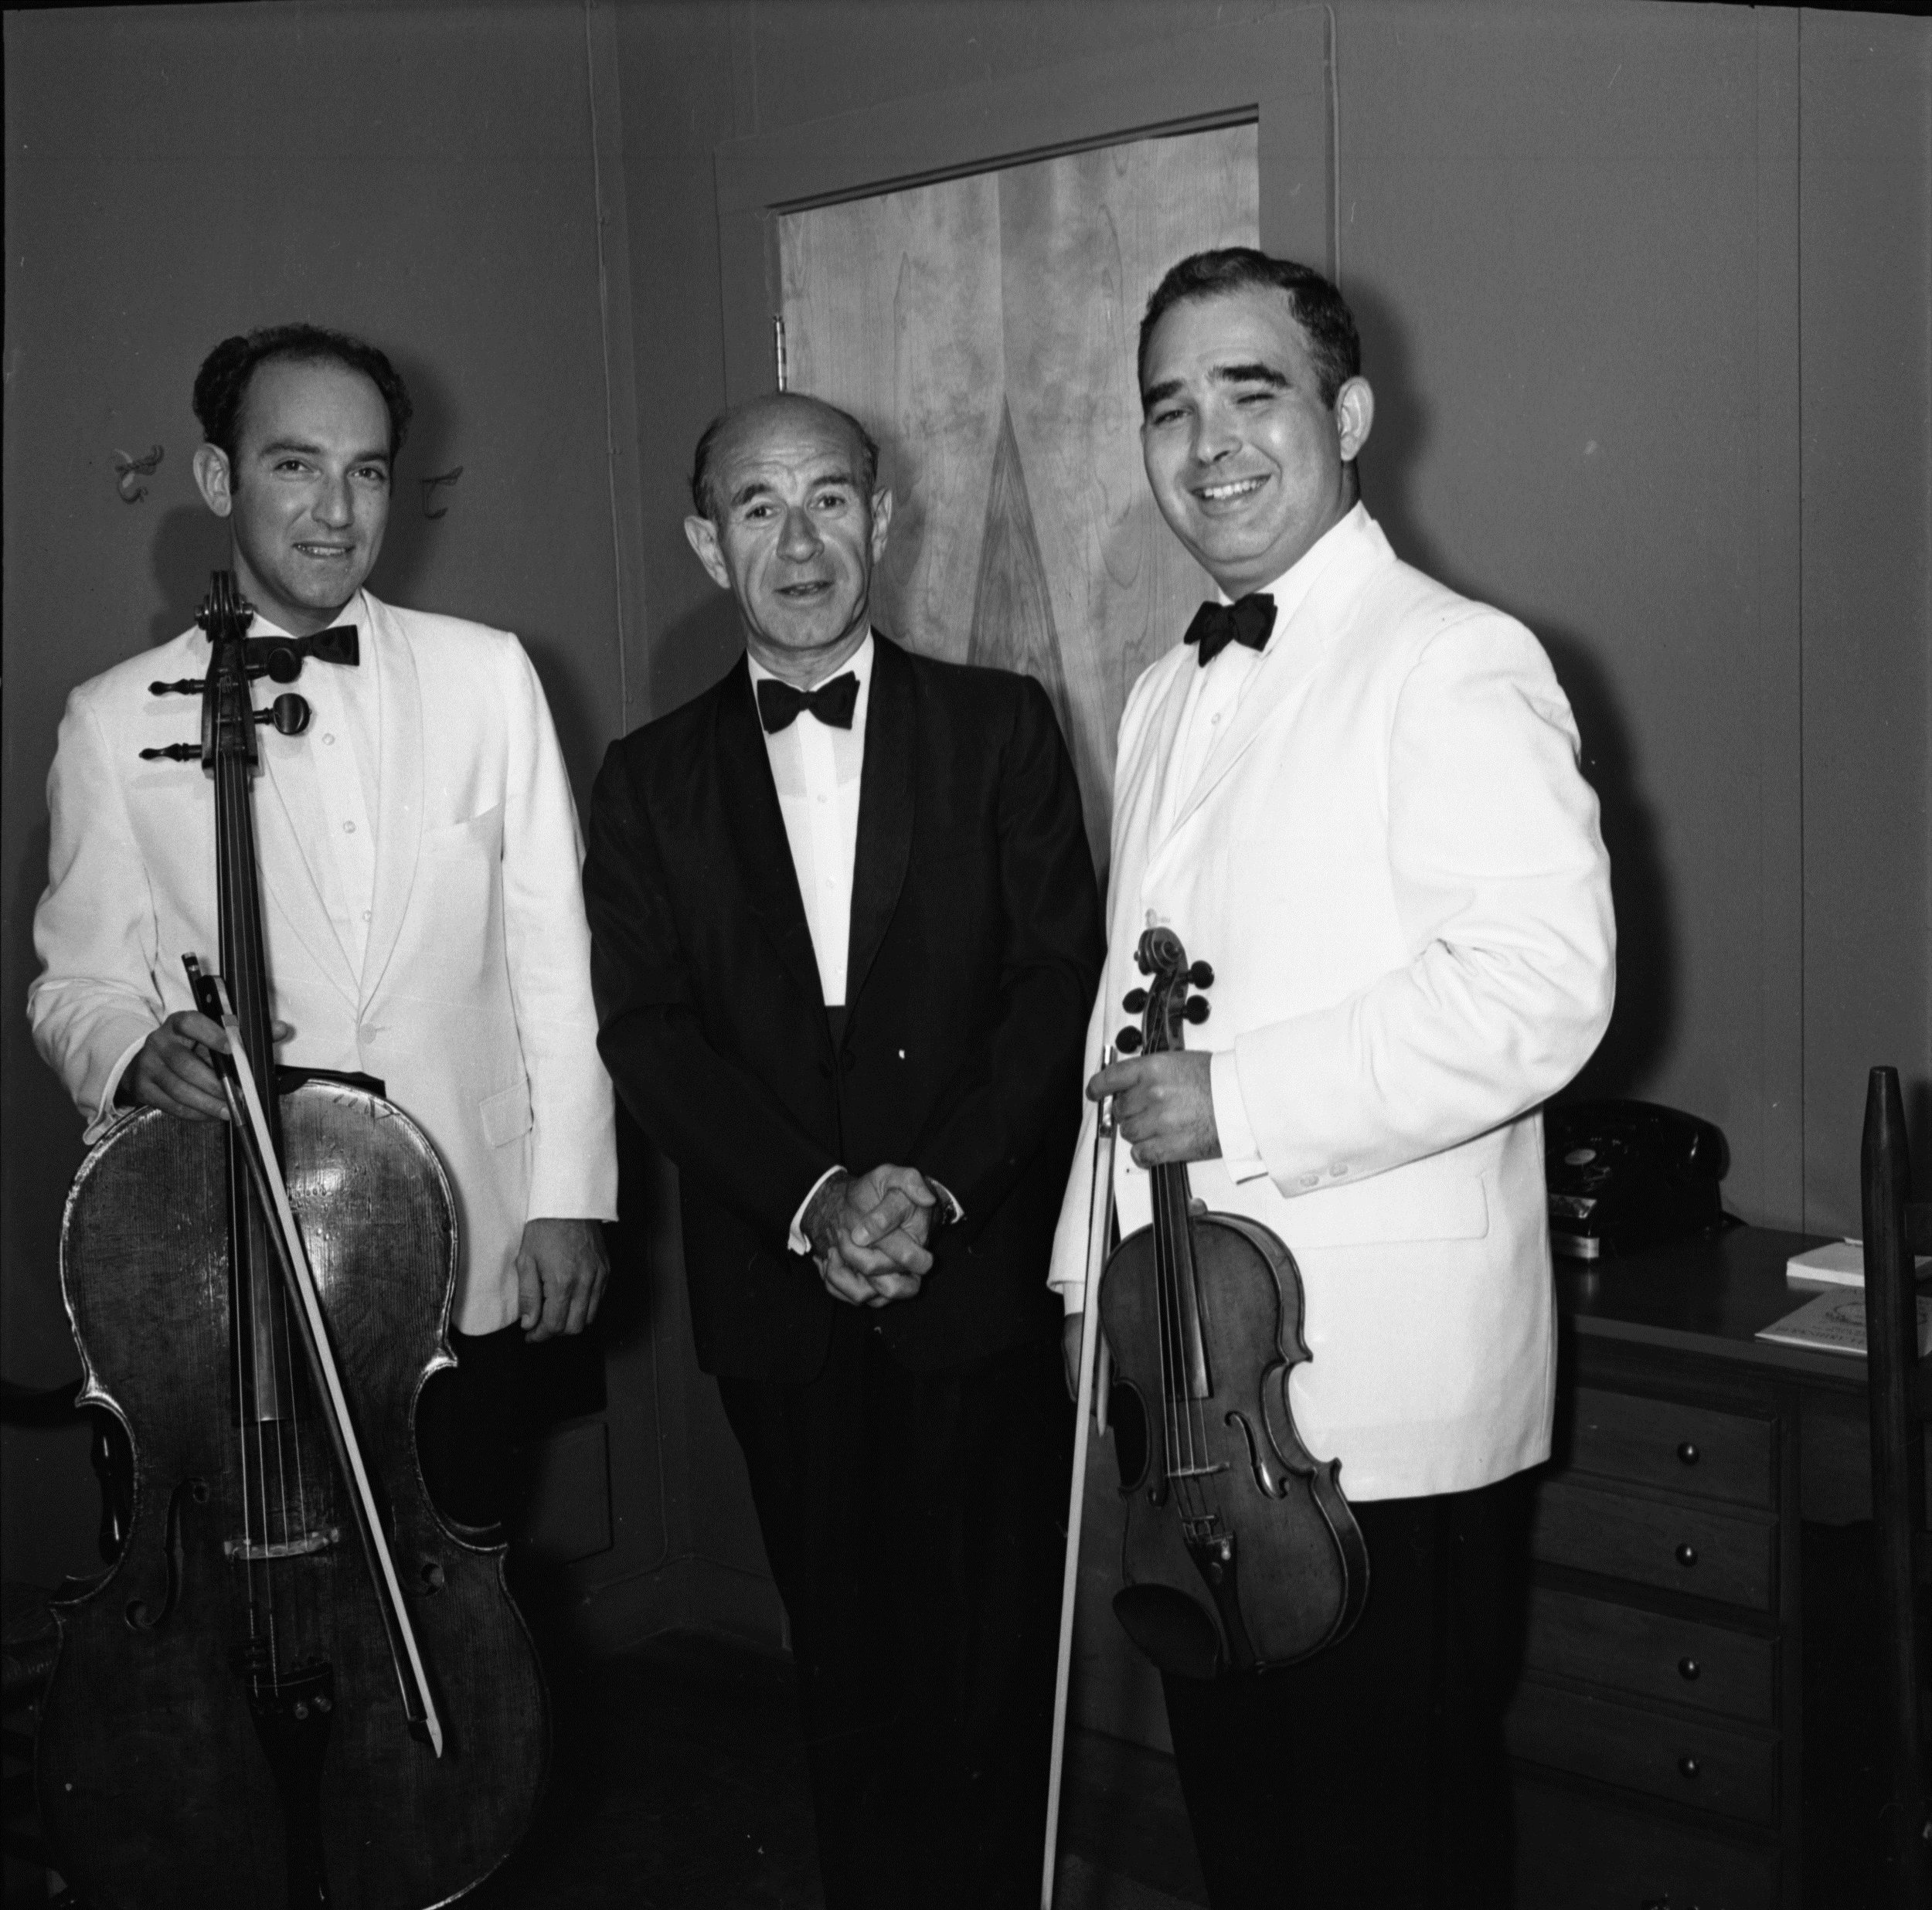 Jules Eskin (left), backstage at Symphony Hall with Erich Leinsdorf (center) and Joseph Silverstein. Year unknown. Whitestone photograph.